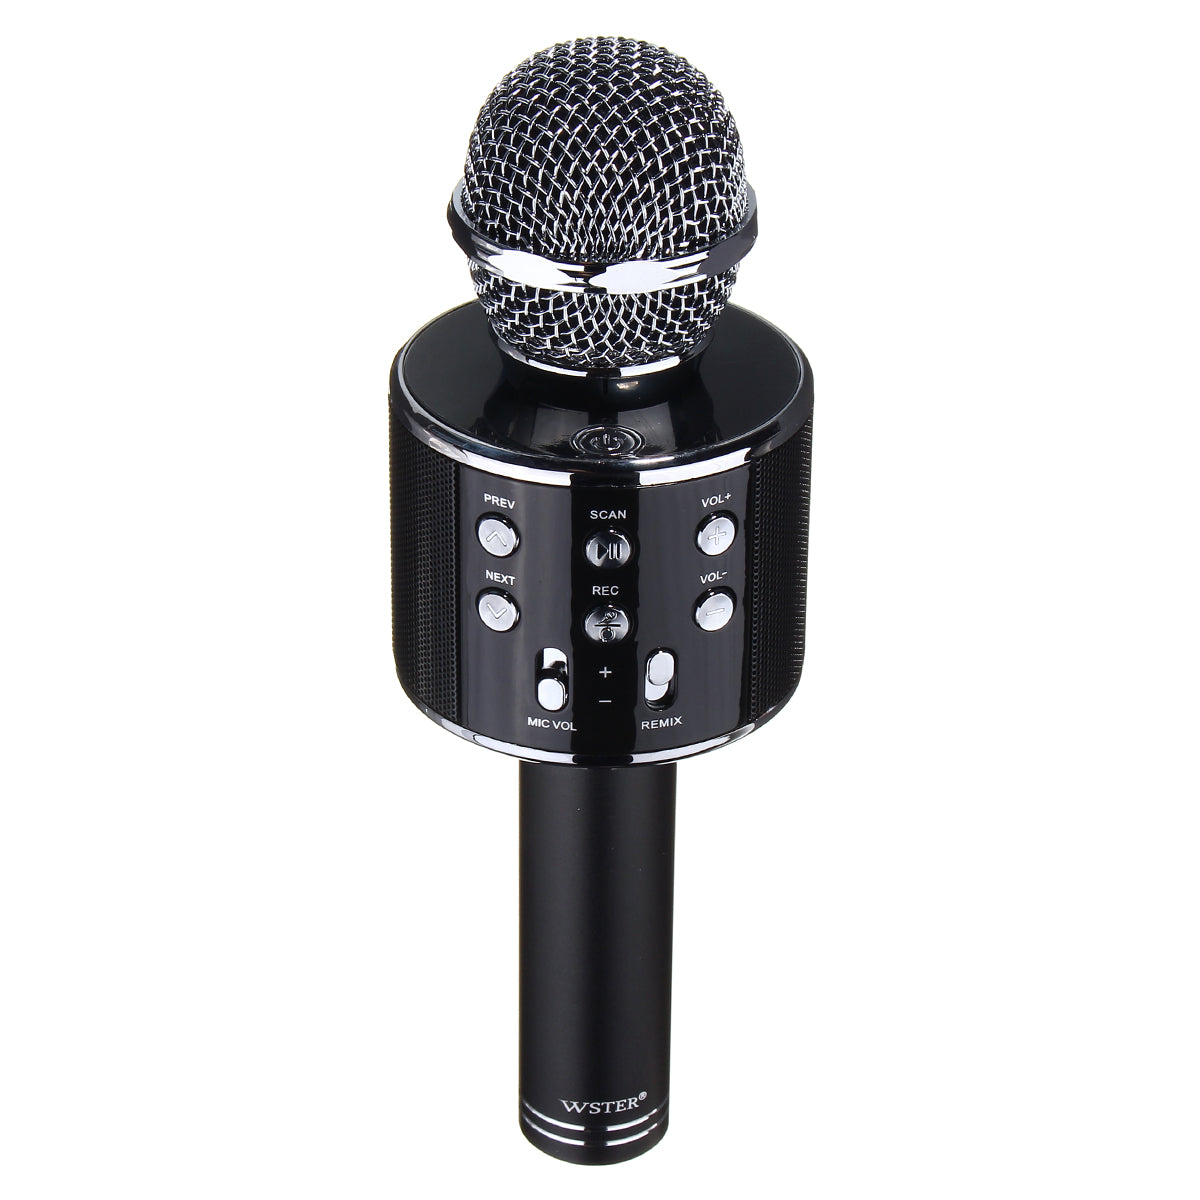 Universal Wireless Bluetooth Karaoke Microphone Speaker Handheld Mic USB Player for iPhone Samsung